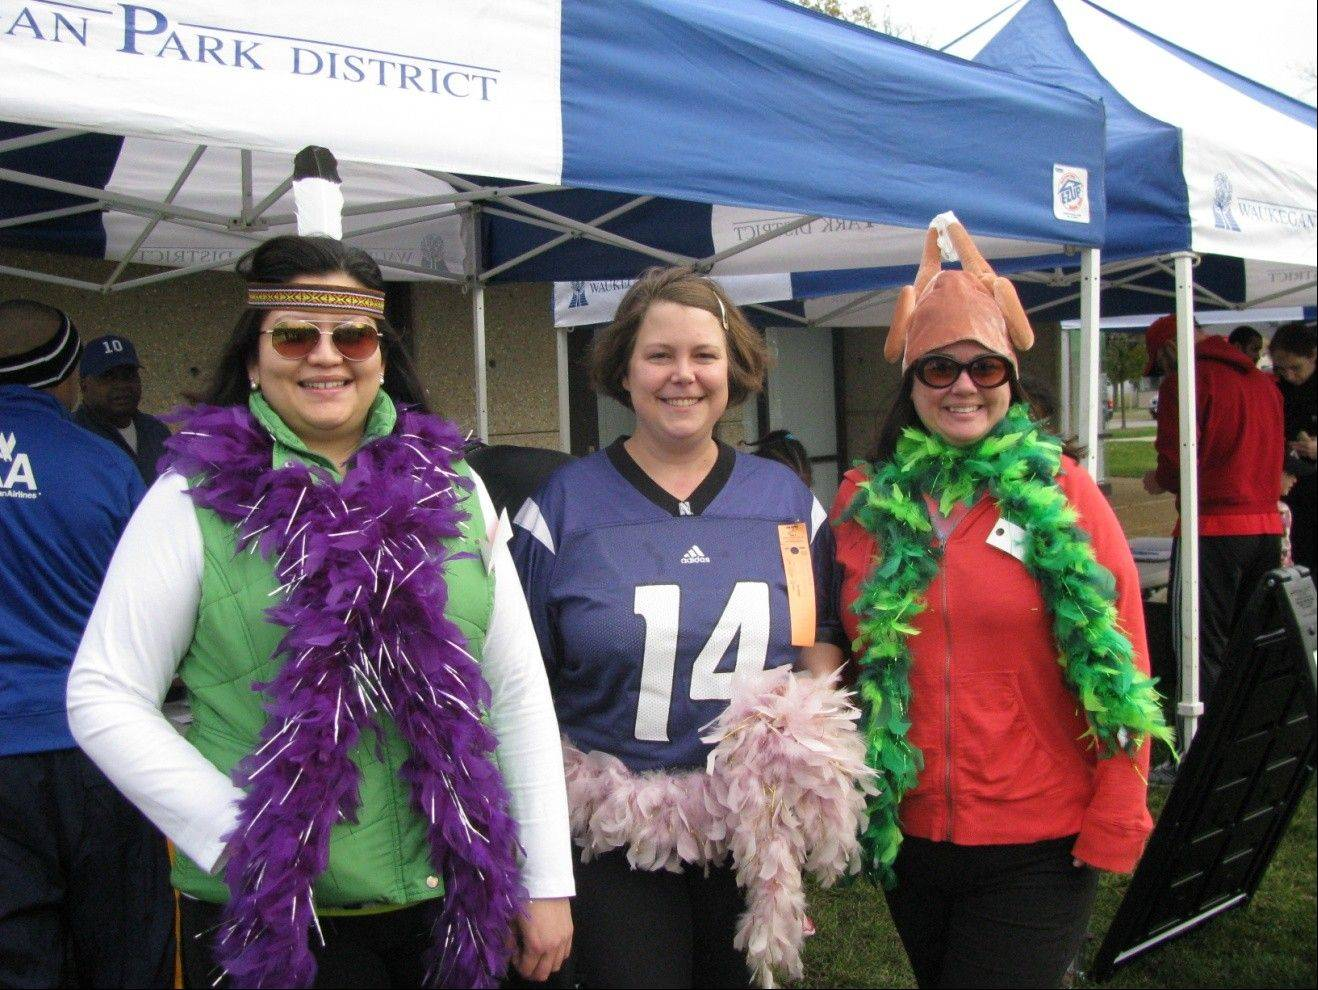 At the Waukegan Park District Turkey Trot are runners Alicia Giles, Aimee Emery-Ortiz and Jen Moore.